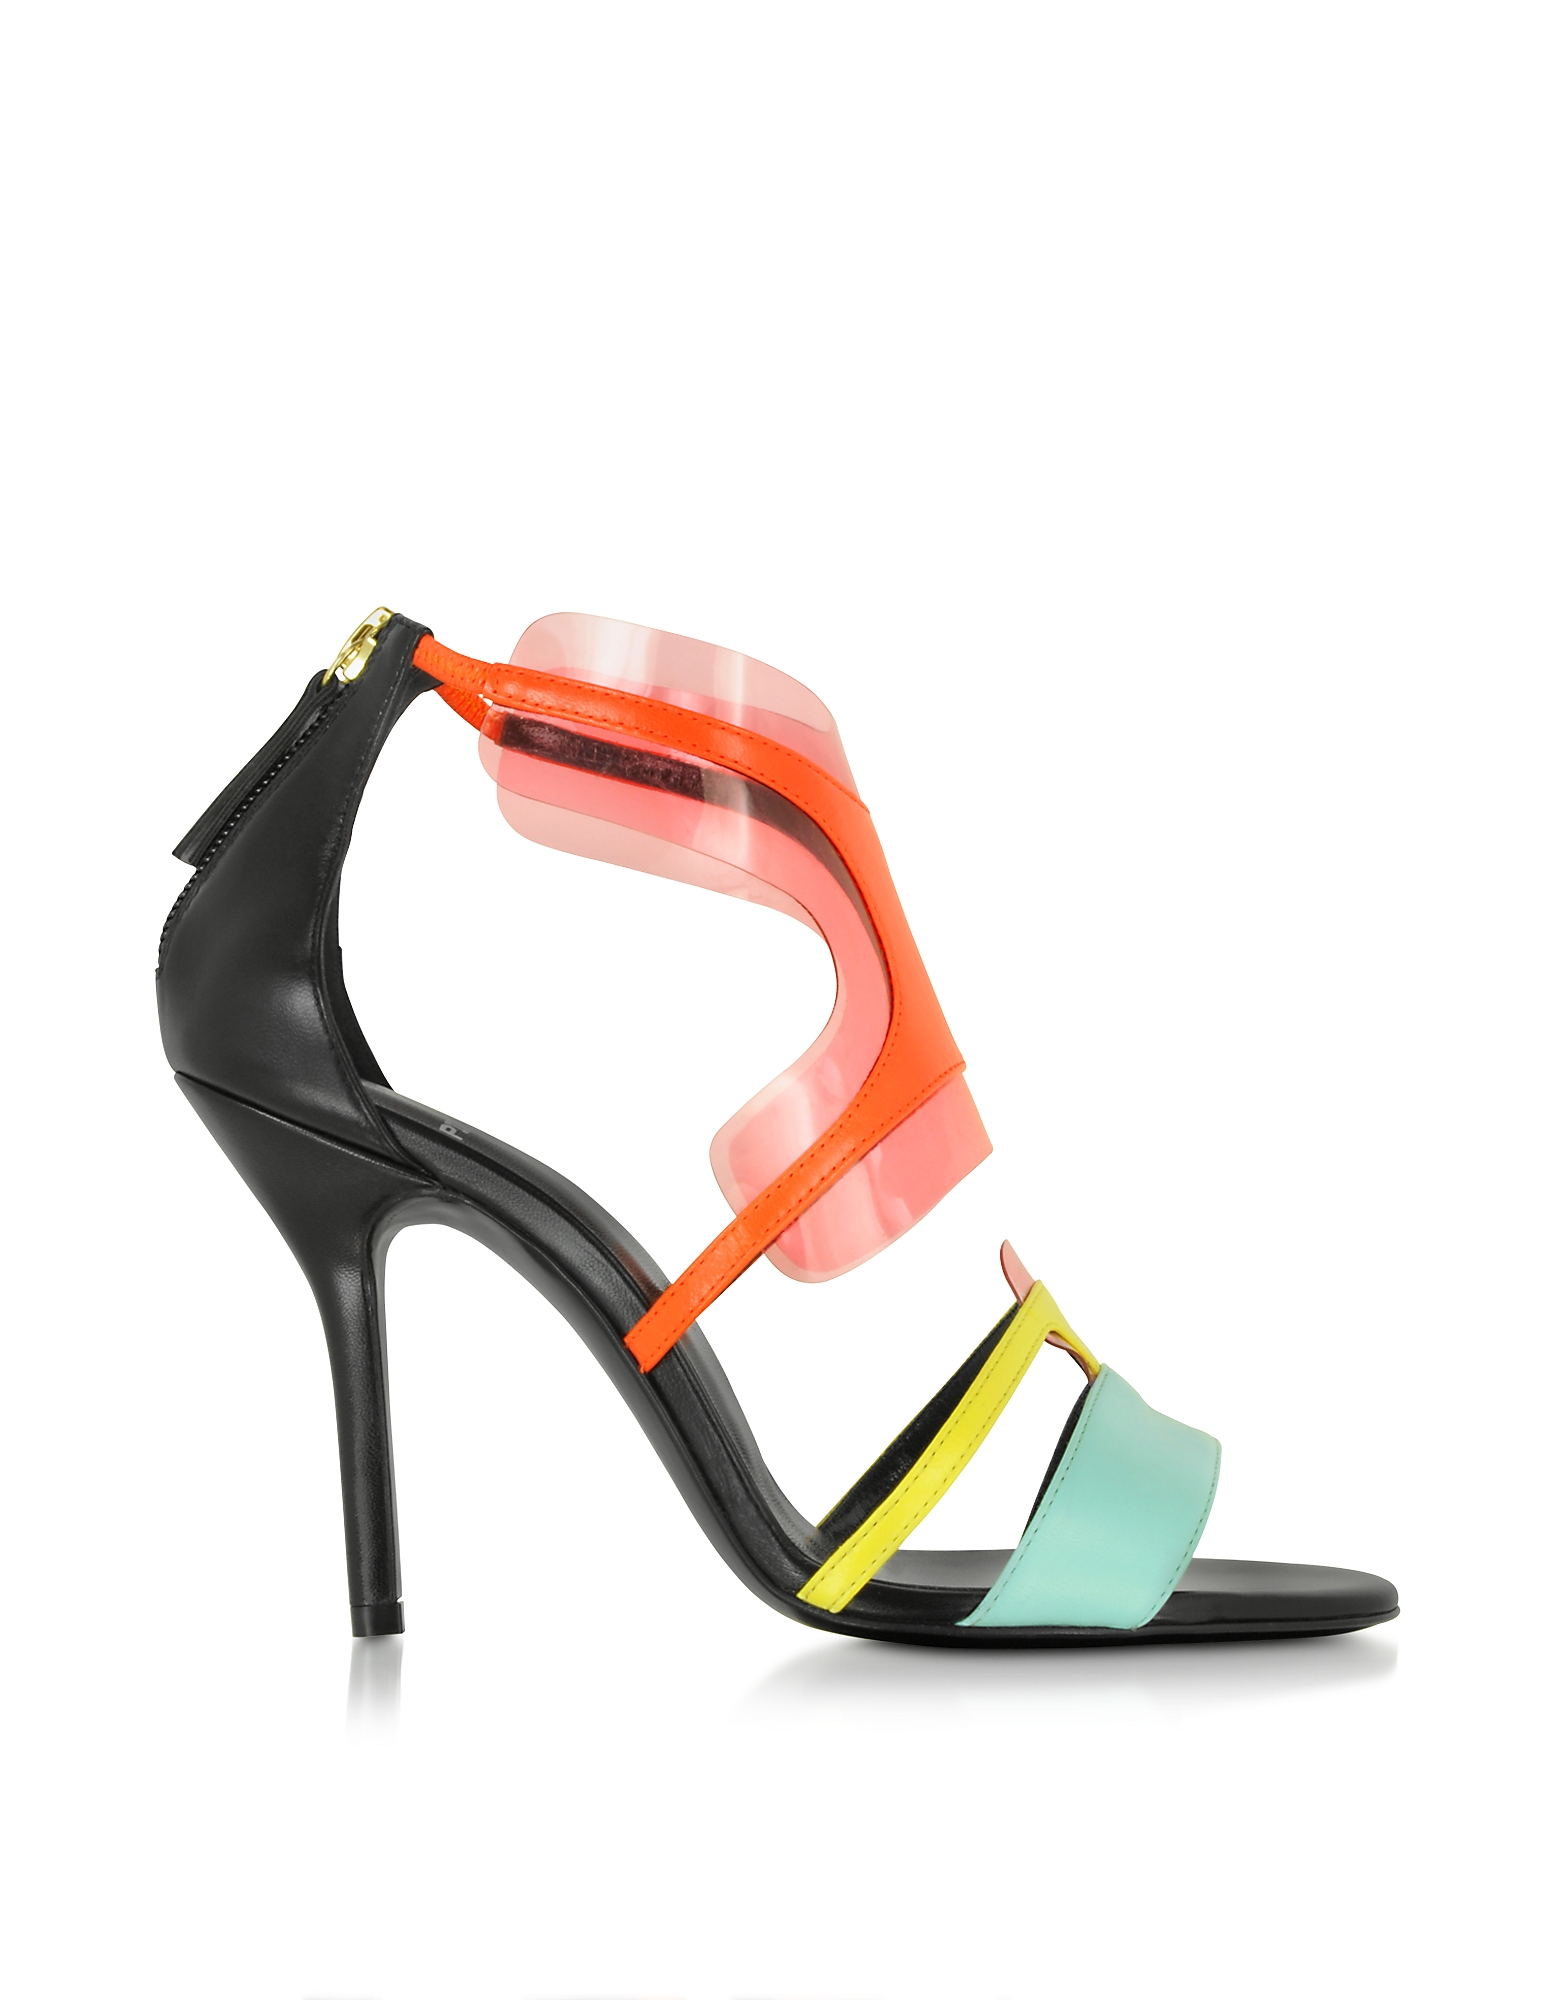 Pierre Hardy Shoes, Multi Pool Shades Leather and PVC Sandal